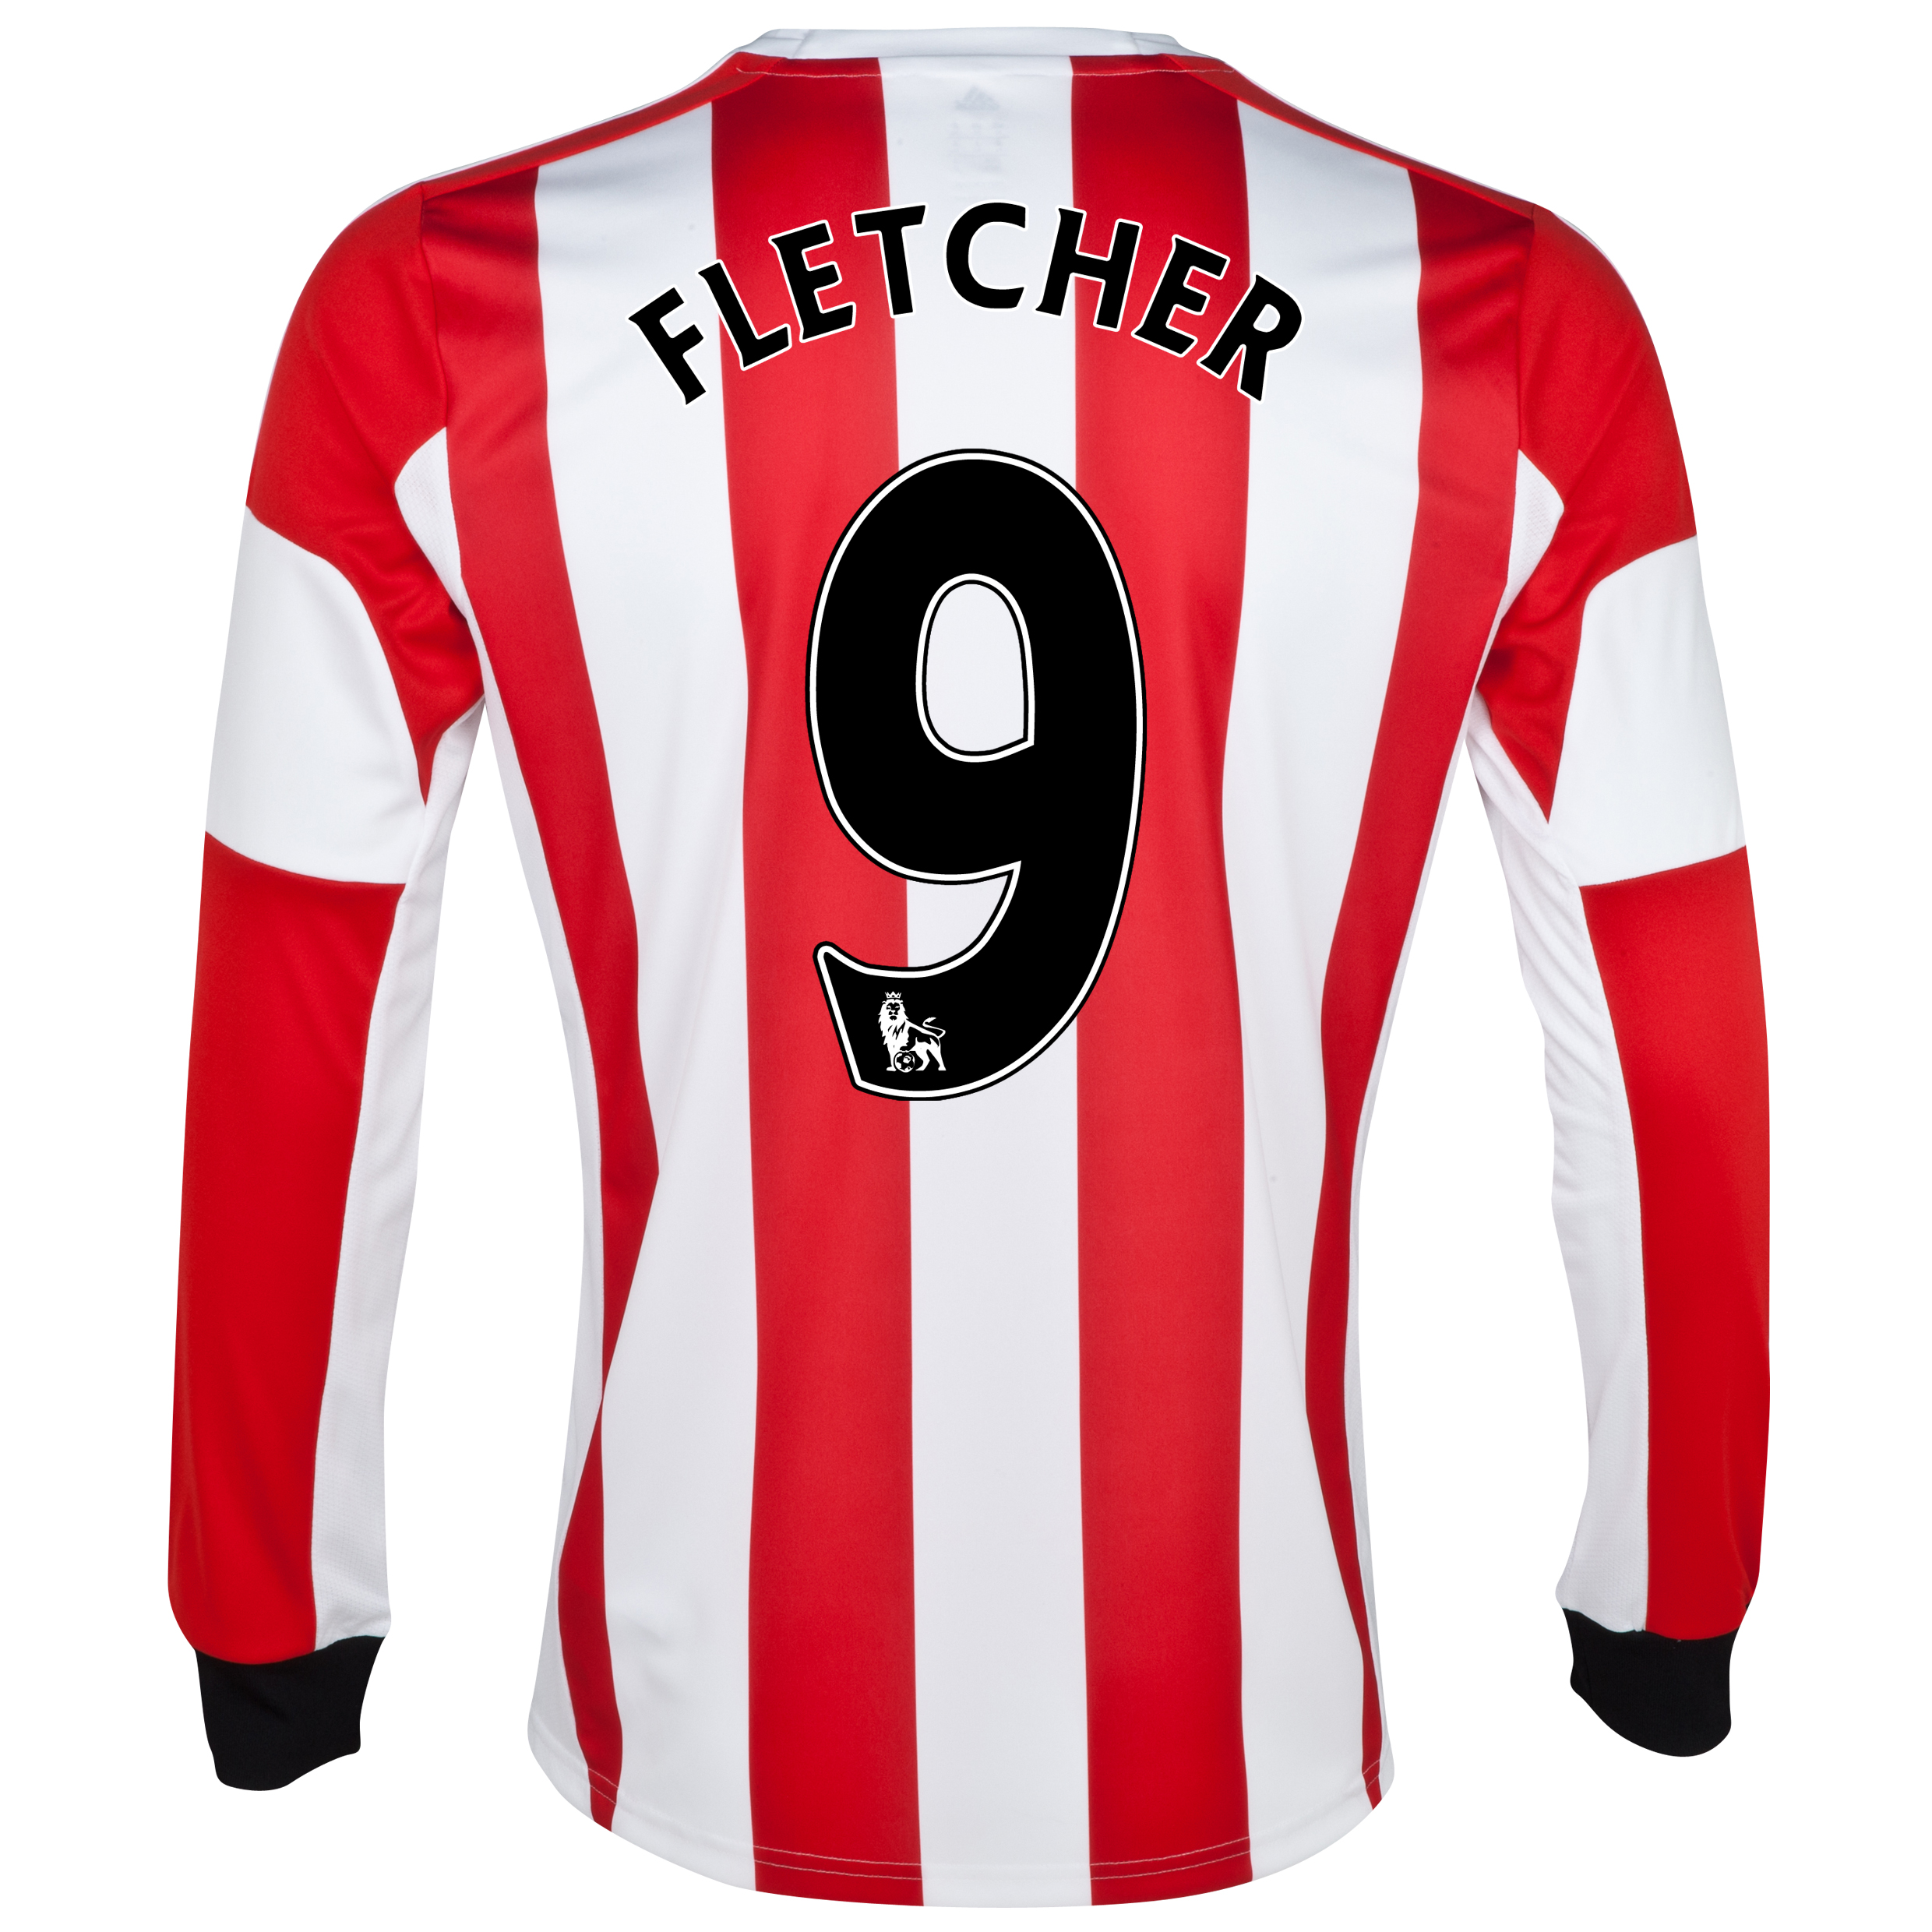 Sunderland Home Shirt 2013/14 - Long Sleeved with Fletcher 9 printing